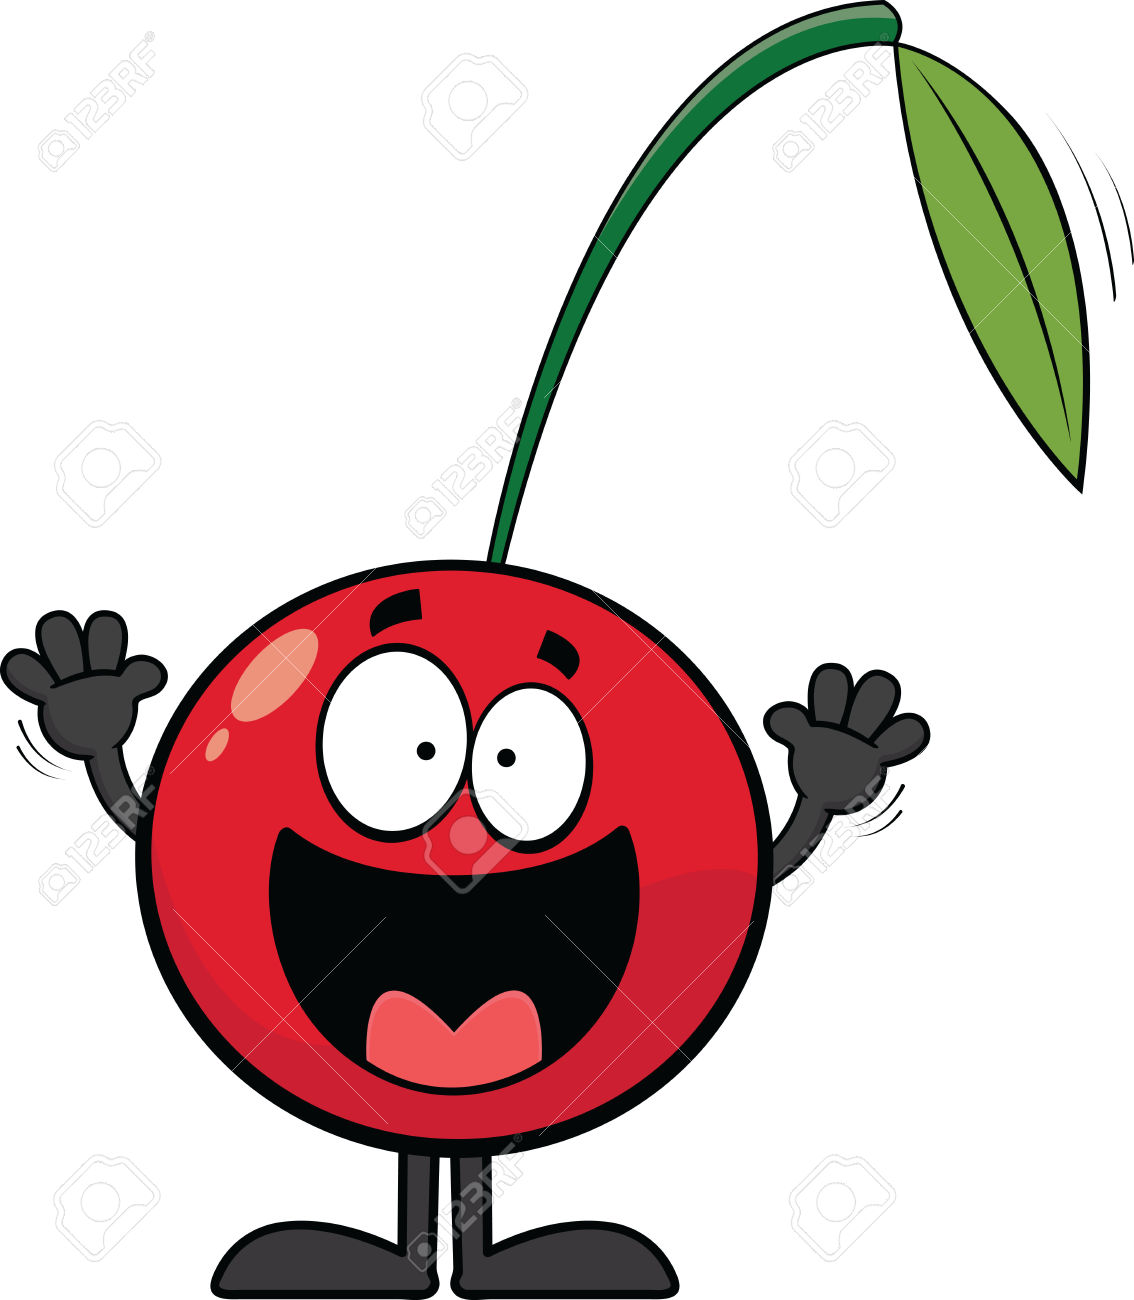 Cartoon Illustration Of A Happy Cherry With An Open Mouth Smile.